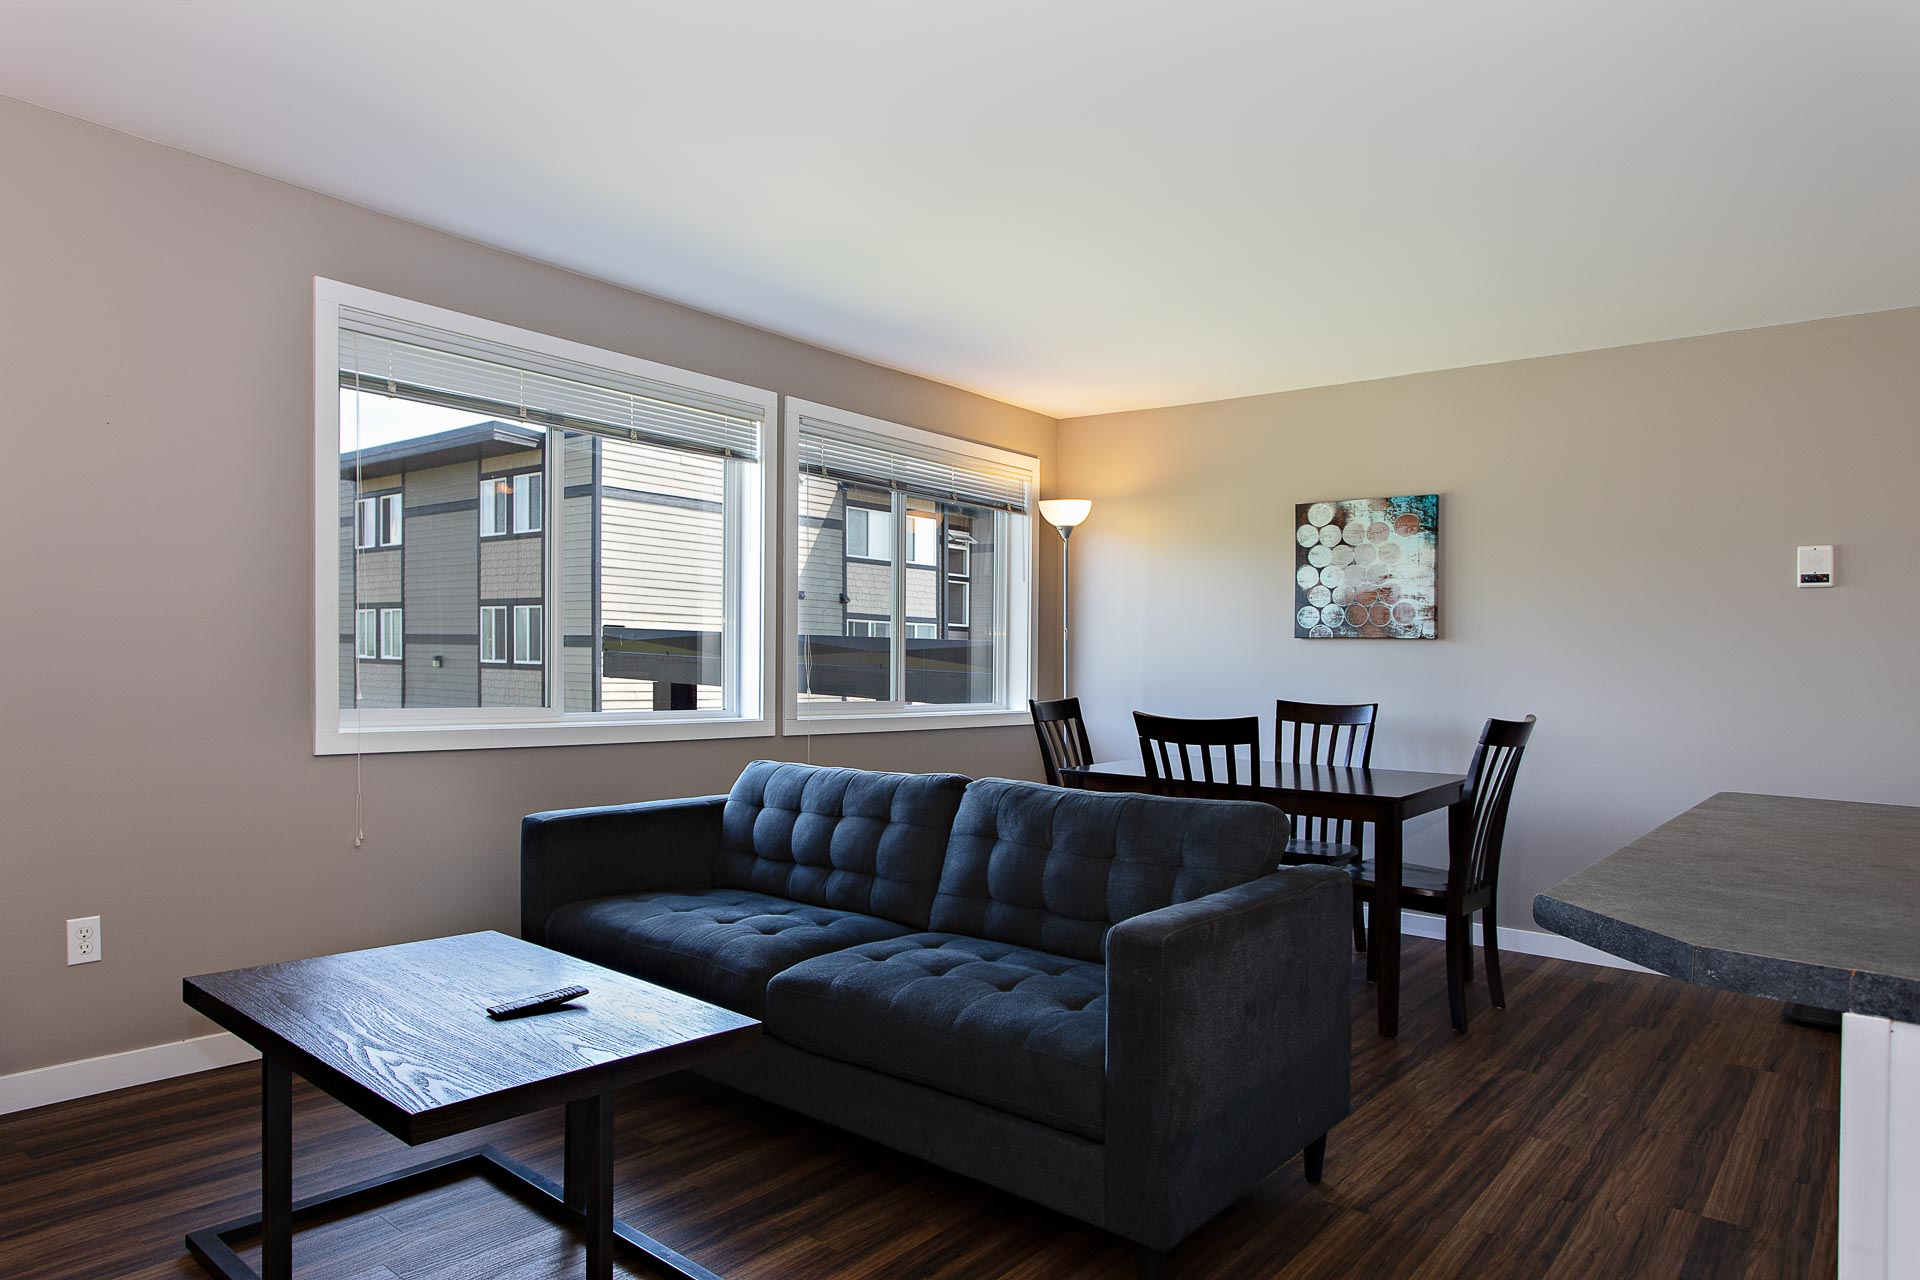 Furnished living room and dining room at Hillcrest Place Apartments in Kitimat, B.C.